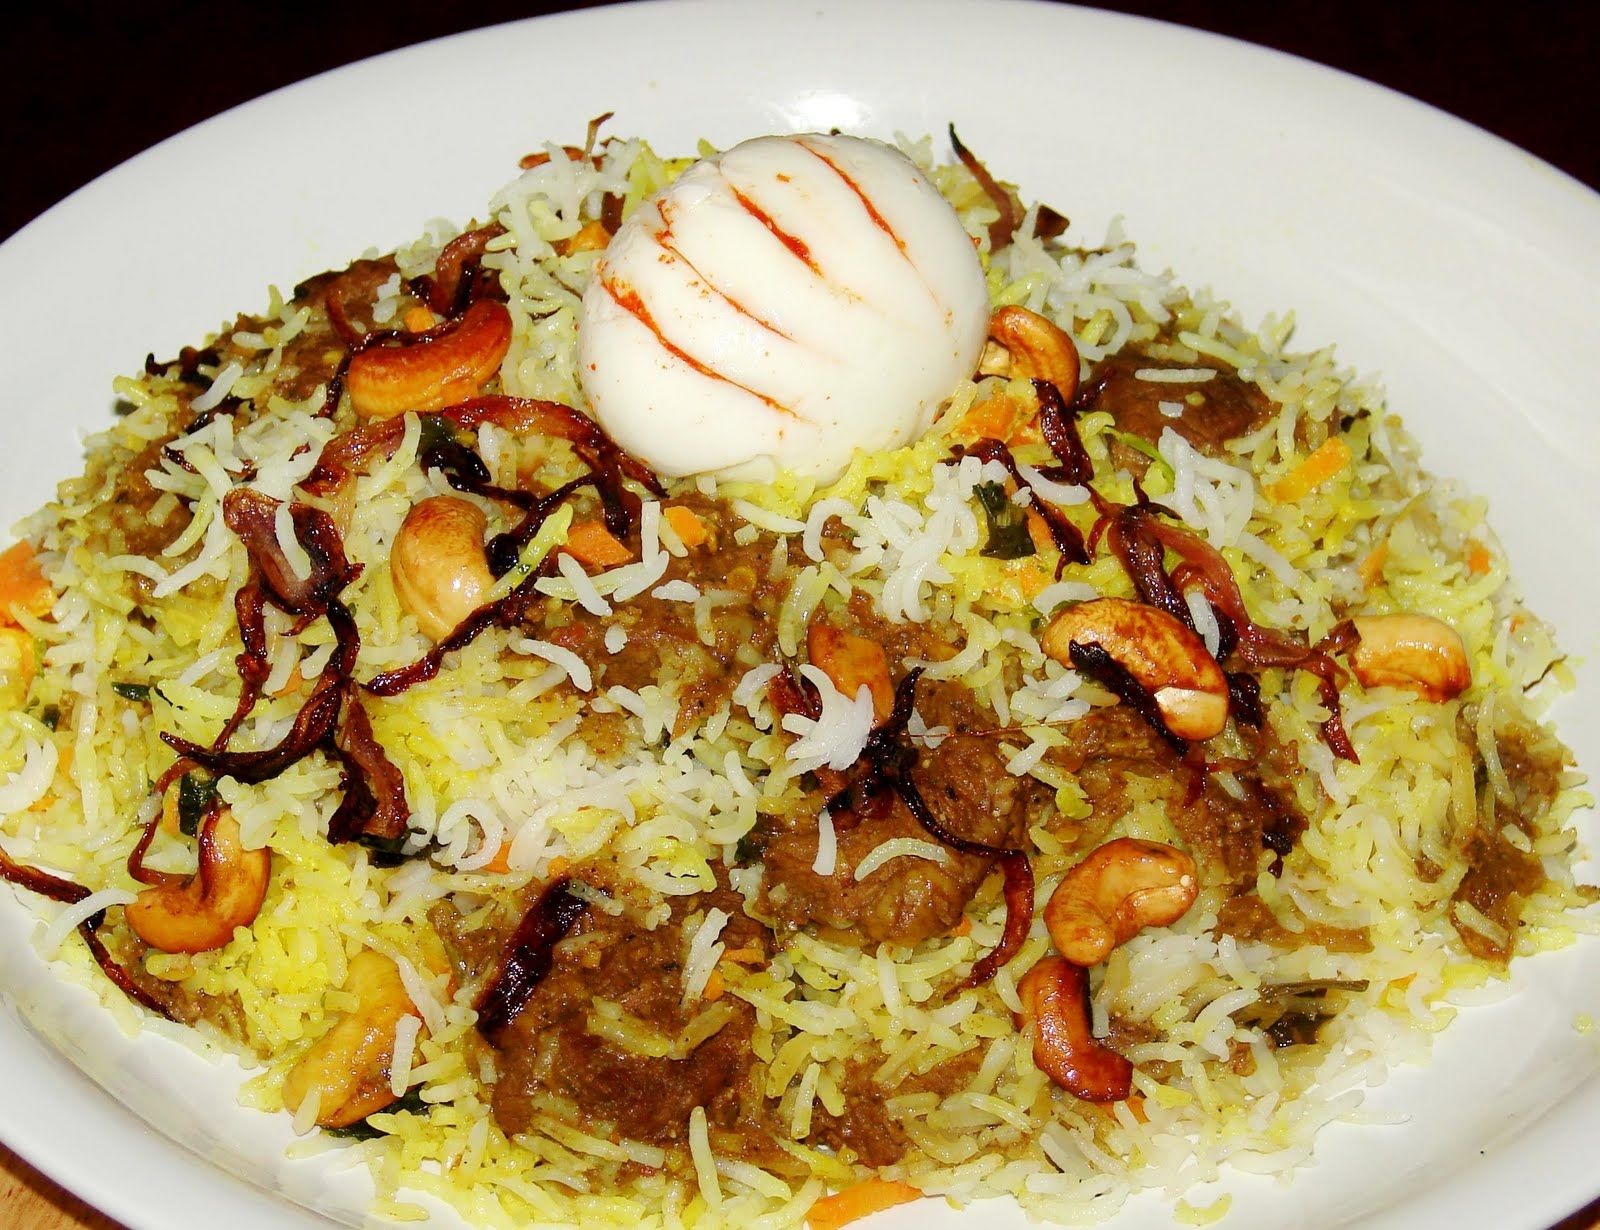 Dum biryani muslim style of dress